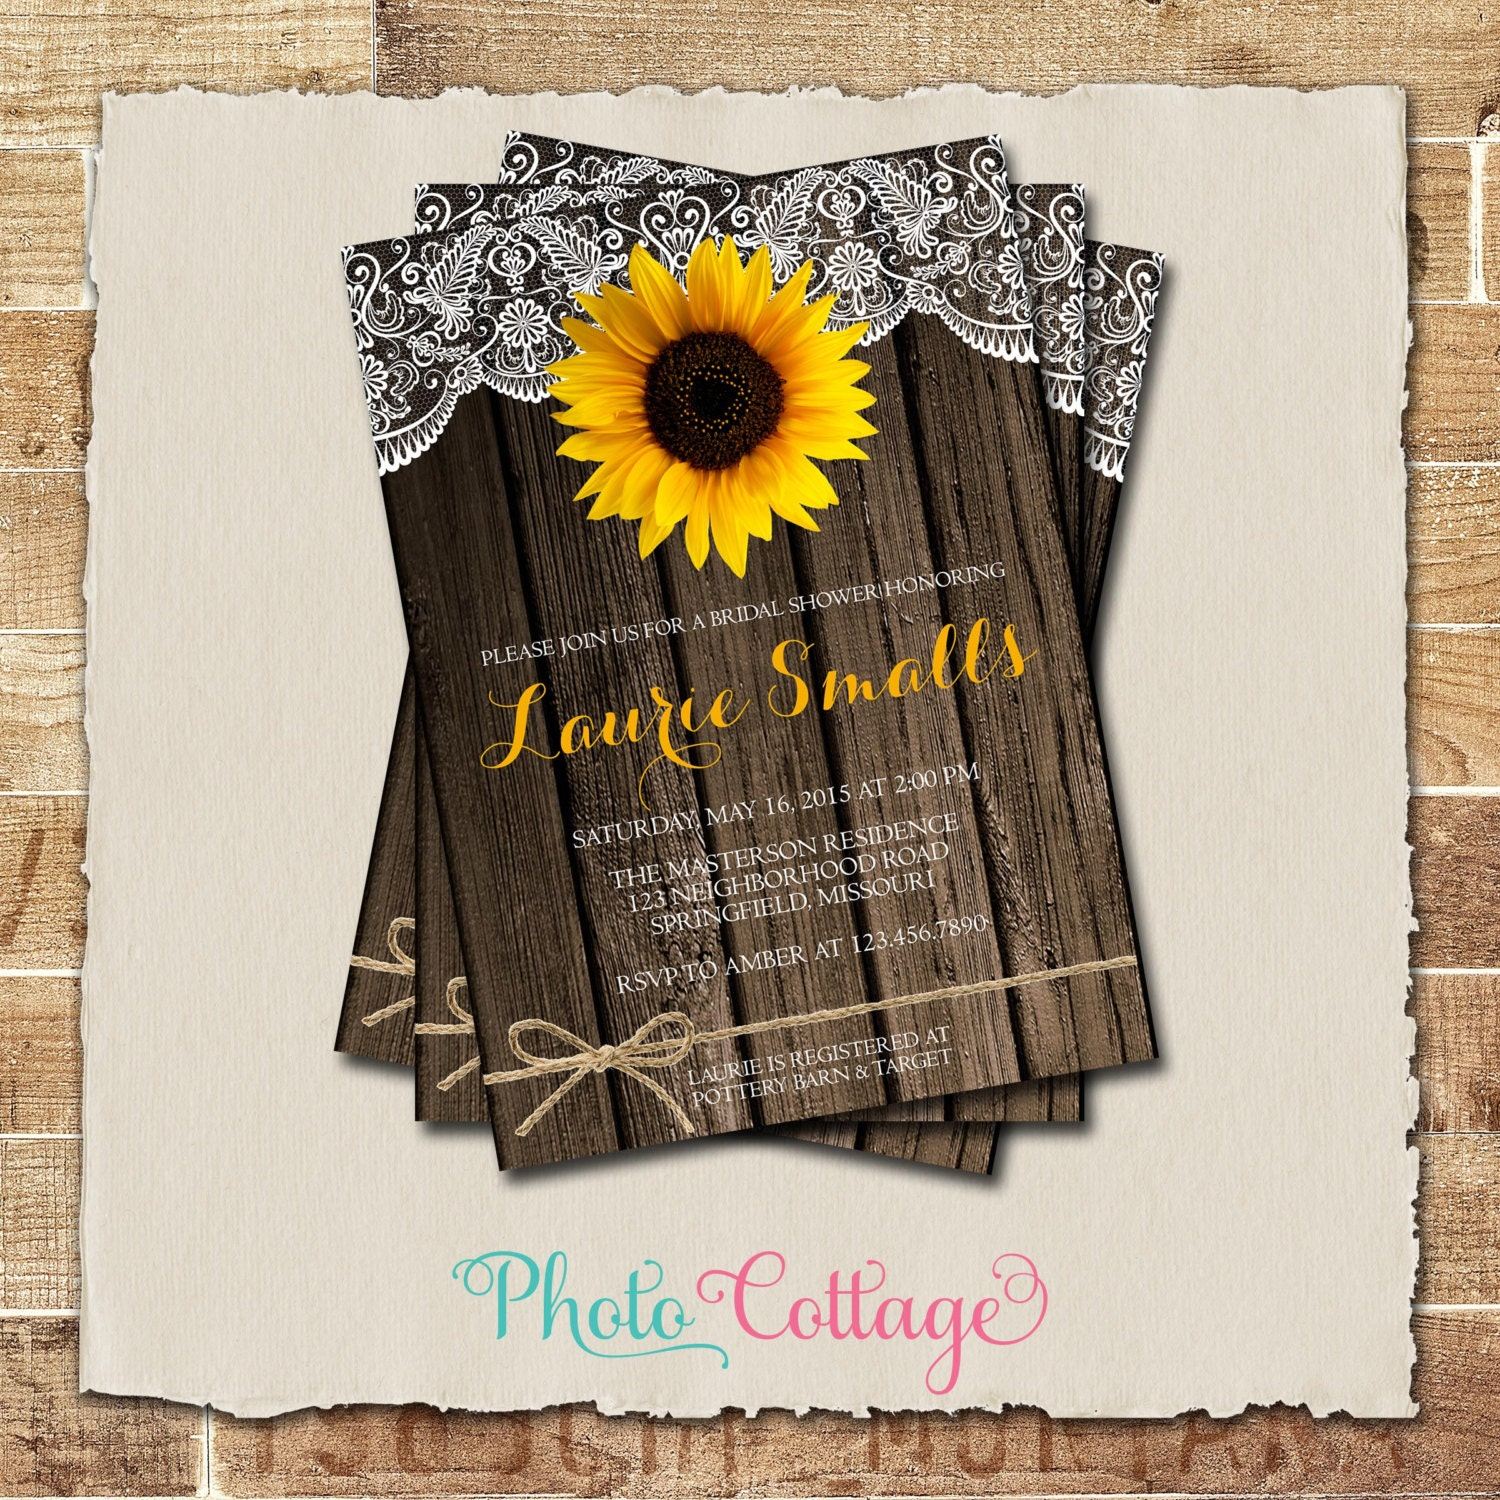 Sunflower Bridal Shower Invitation Rustic Wood And Lace